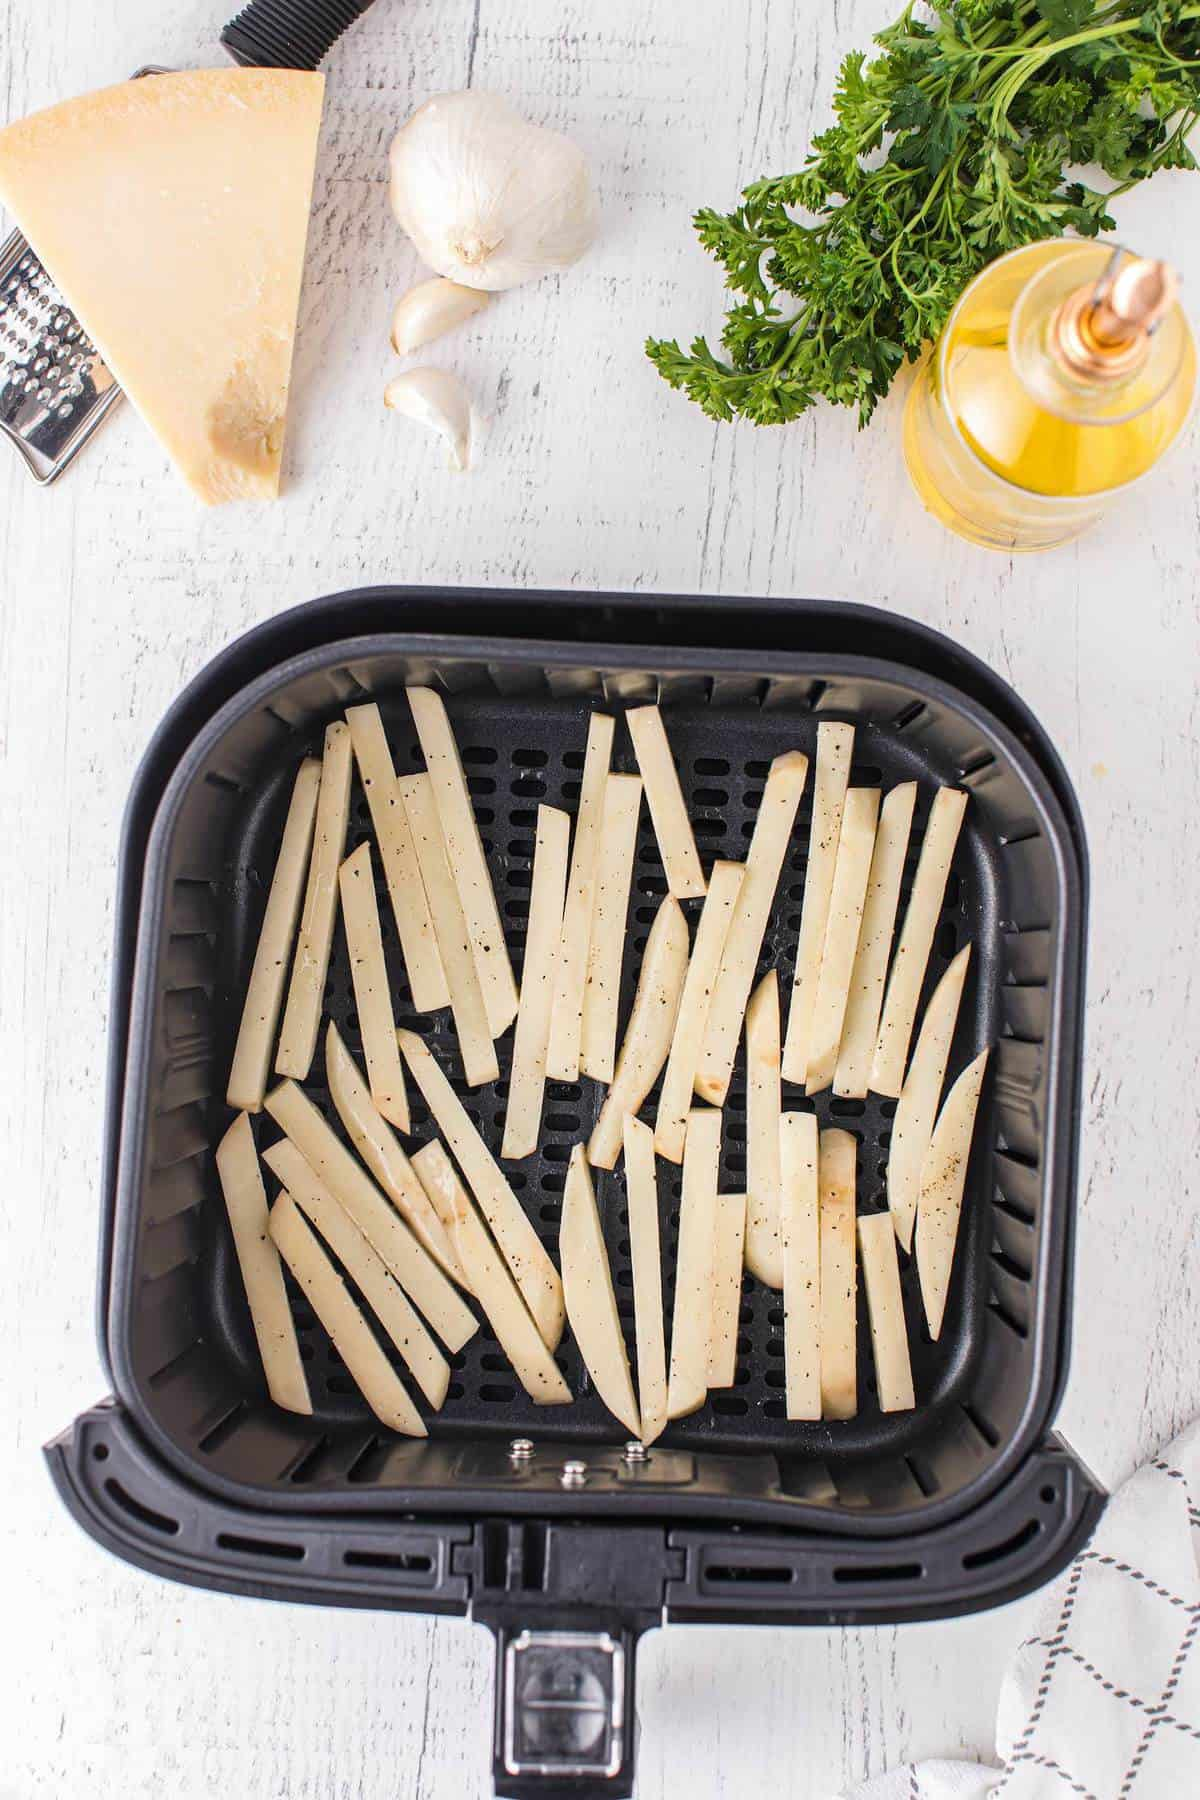 uncooked fries placed in the air fryer basket